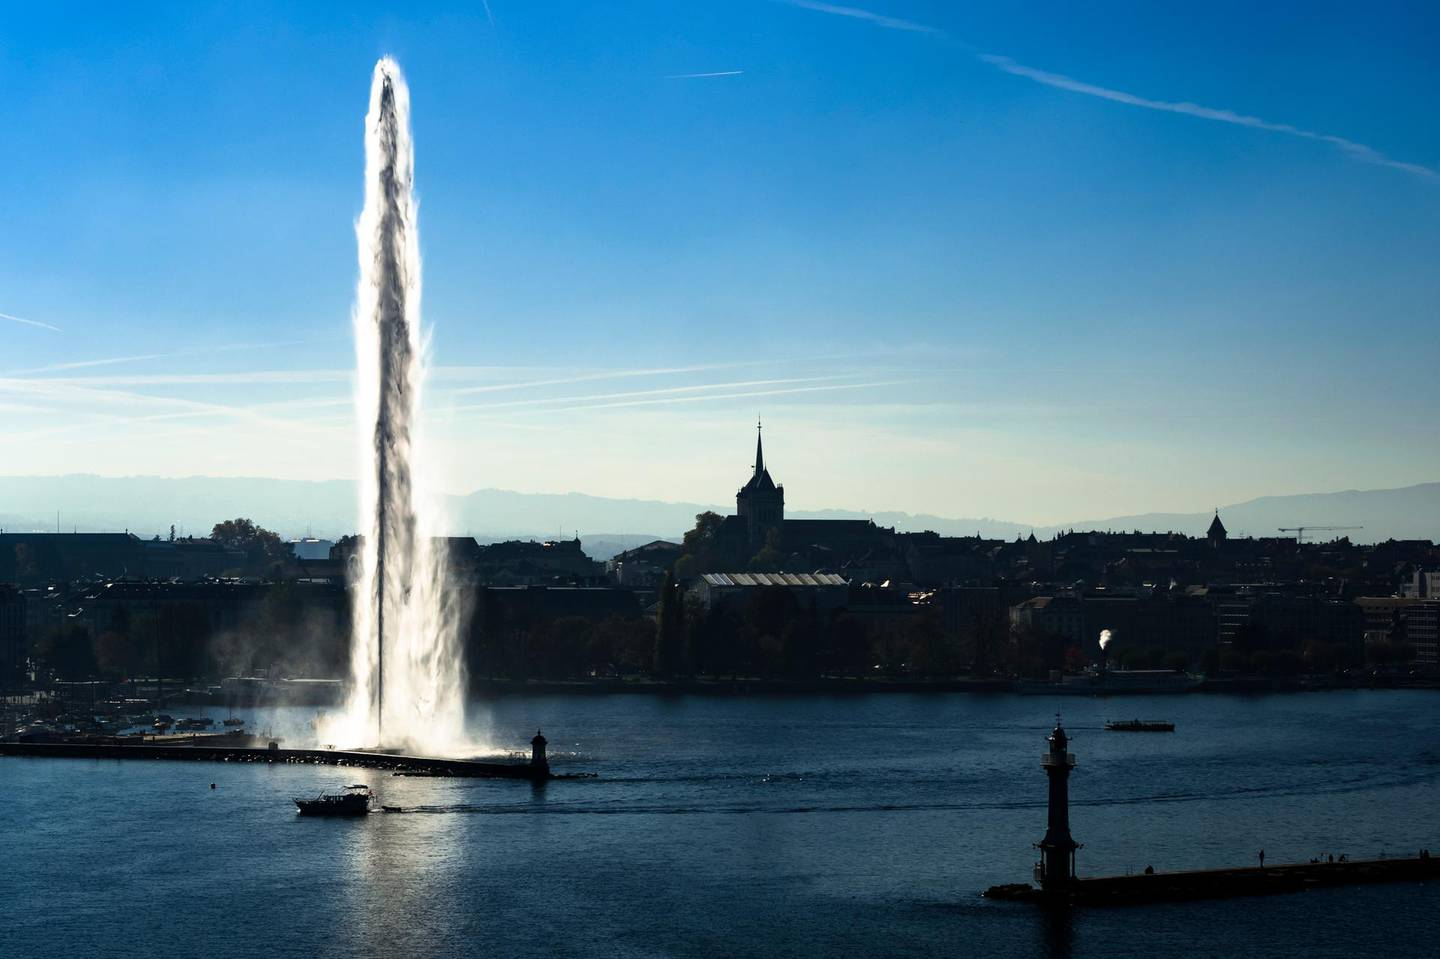 """FILE - In this Oct. 26, 2017 file photo, taken with a drone, the Geneva Water Fountain landmark, """"Jet d'Eau"""" in French, rises above the harbor and in front of the European headquarters of the United Nations in Geneva, Switzerland. President Joe Biden will hold a summit with Russian President Vladimir Putin next month in Geneva, a face-to-face meeting between the two leaders that comes amid escalating tensions between the U.S. and Russia in the first months of the Biden administration. The White House confirmed details of the summit set for June 16 on Tuesday May 25, 2021. (Valentin Flauraud/Keystone via AP, File)"""